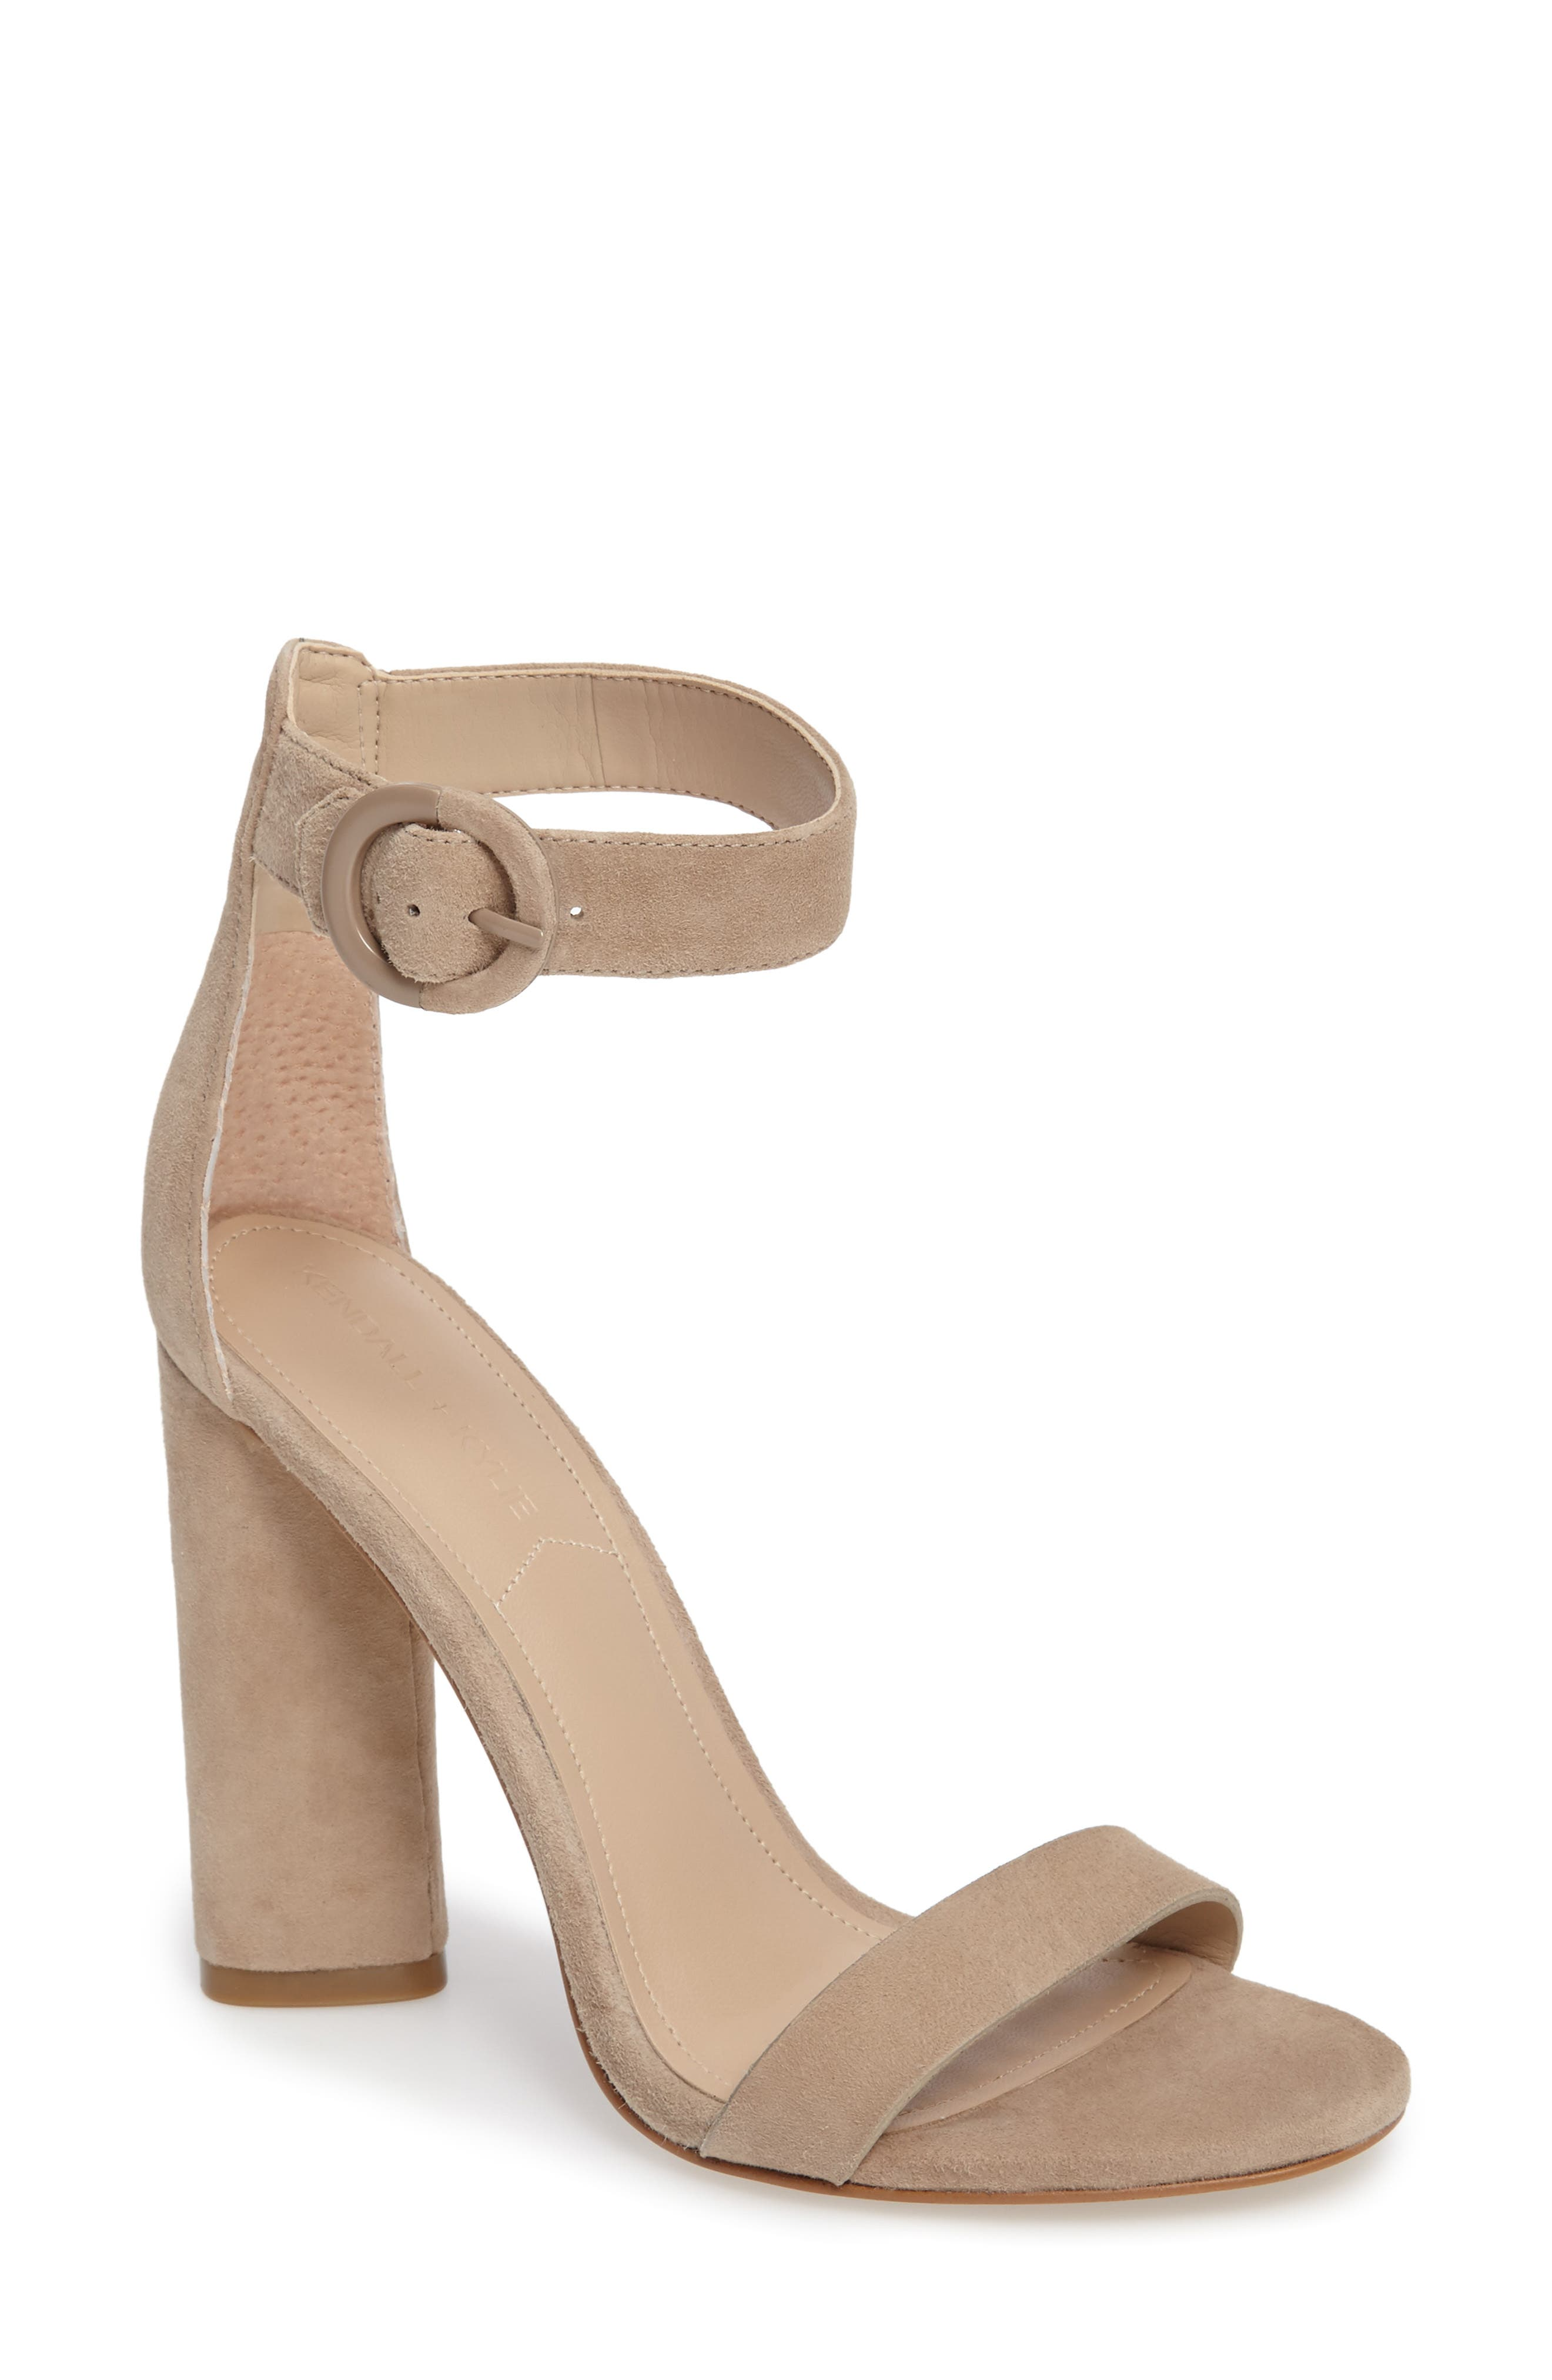 Alternate Image 1 Selected - KENDALL + KYLIE Giselle Strappy Sandal (Women)